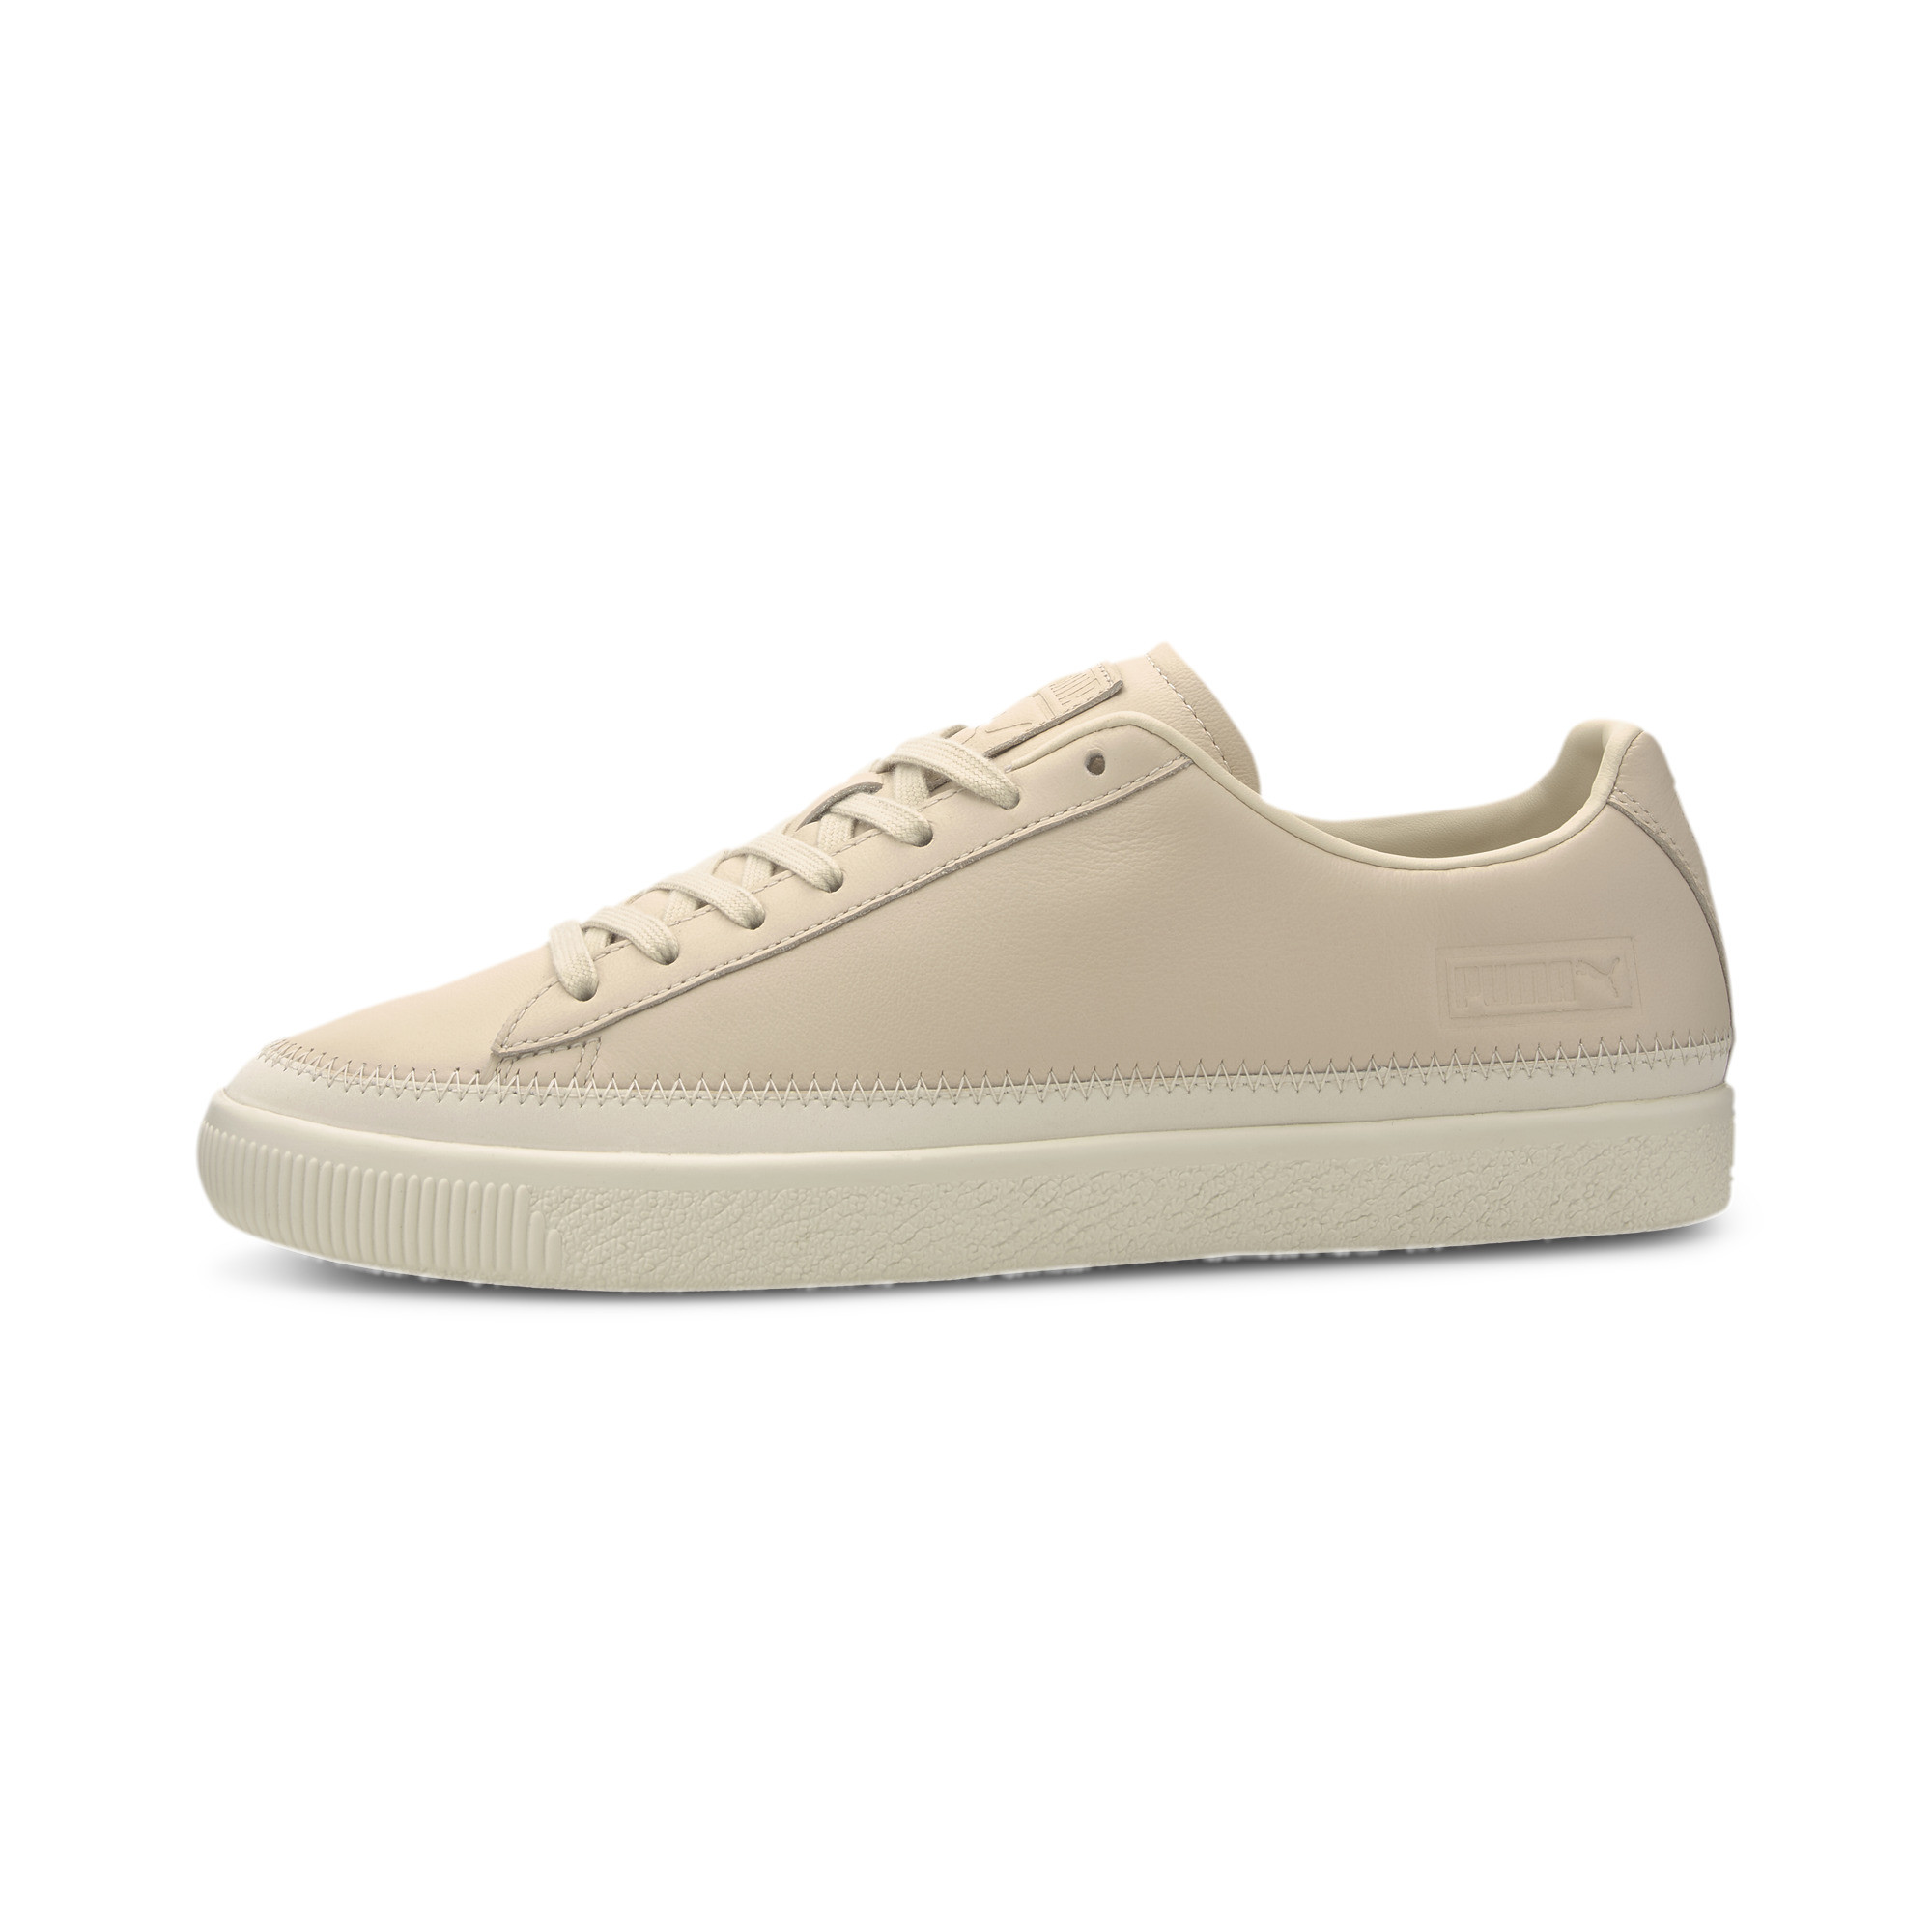 PUMA-Men-039-s-Basket-Trim-PRM-Sneakers thumbnail 11